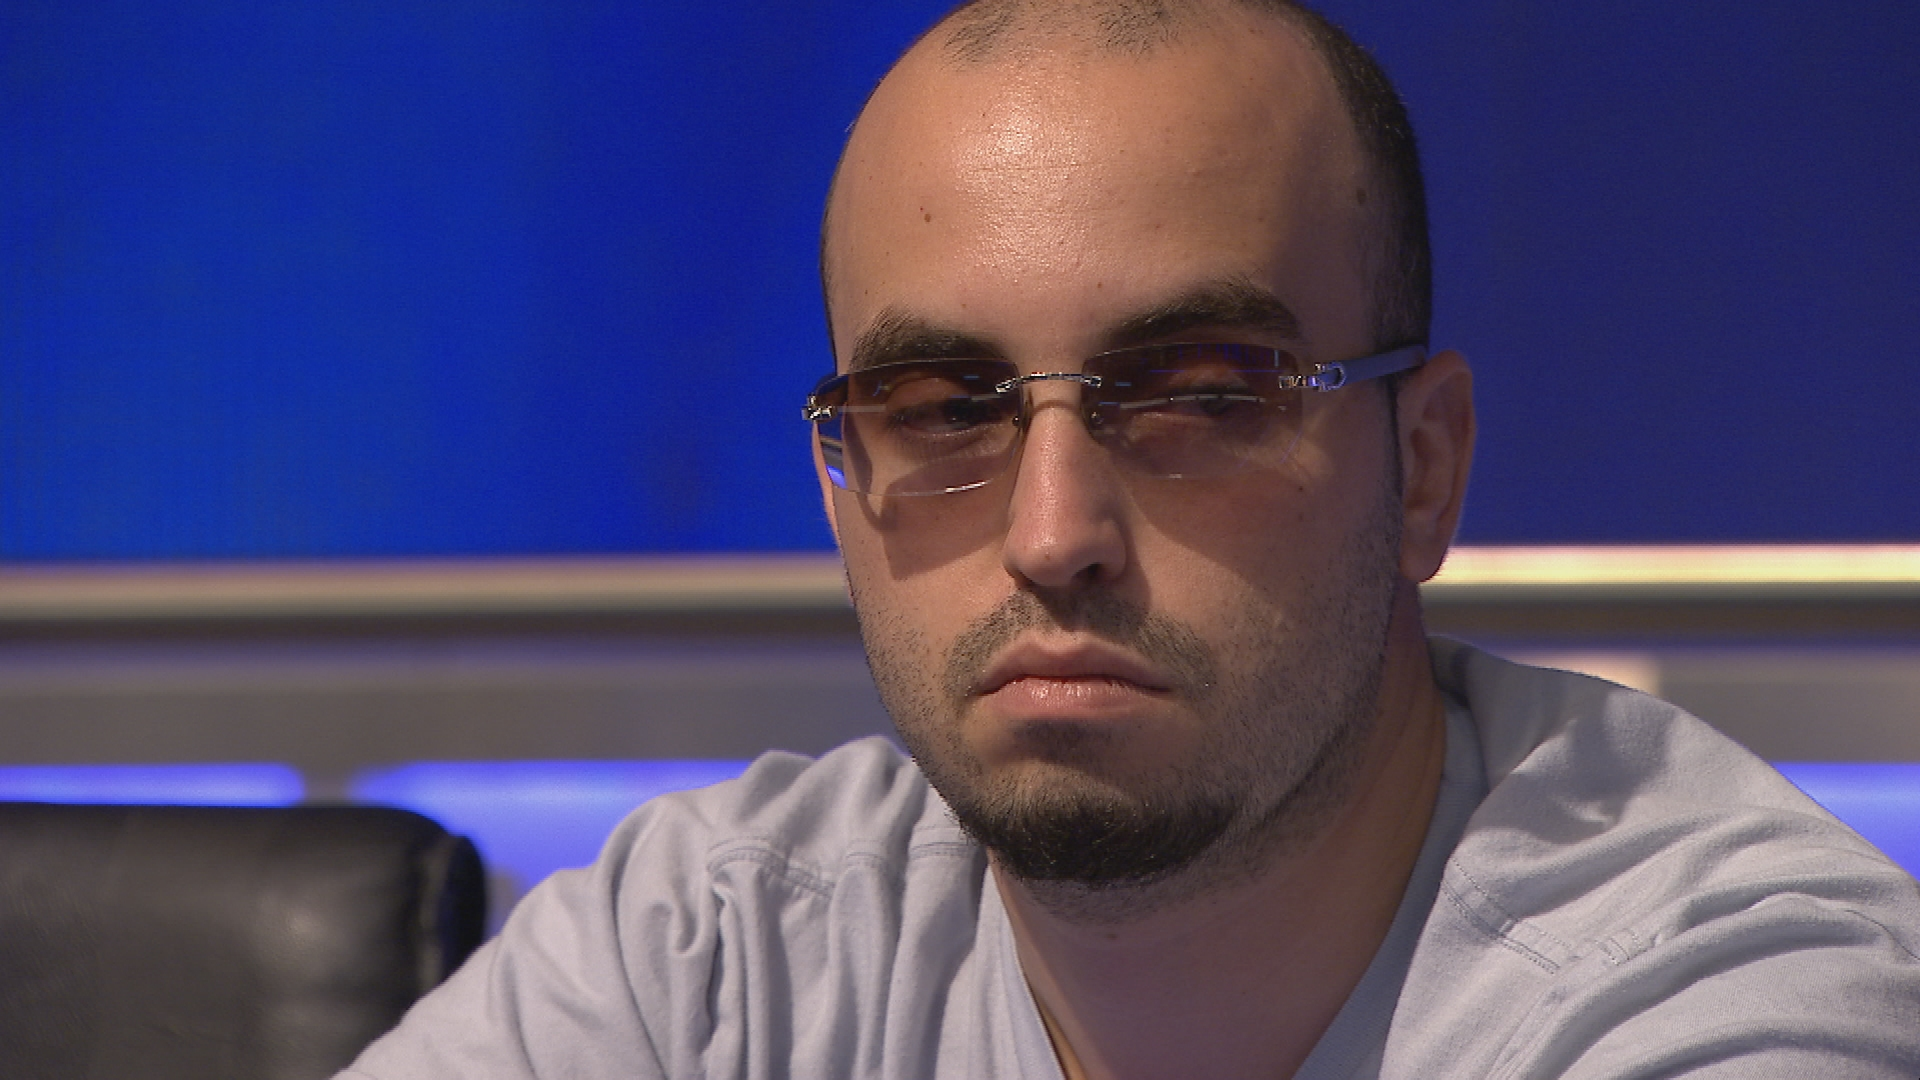 Amazing Bluff and Poker Strategy by Bryn Kenney